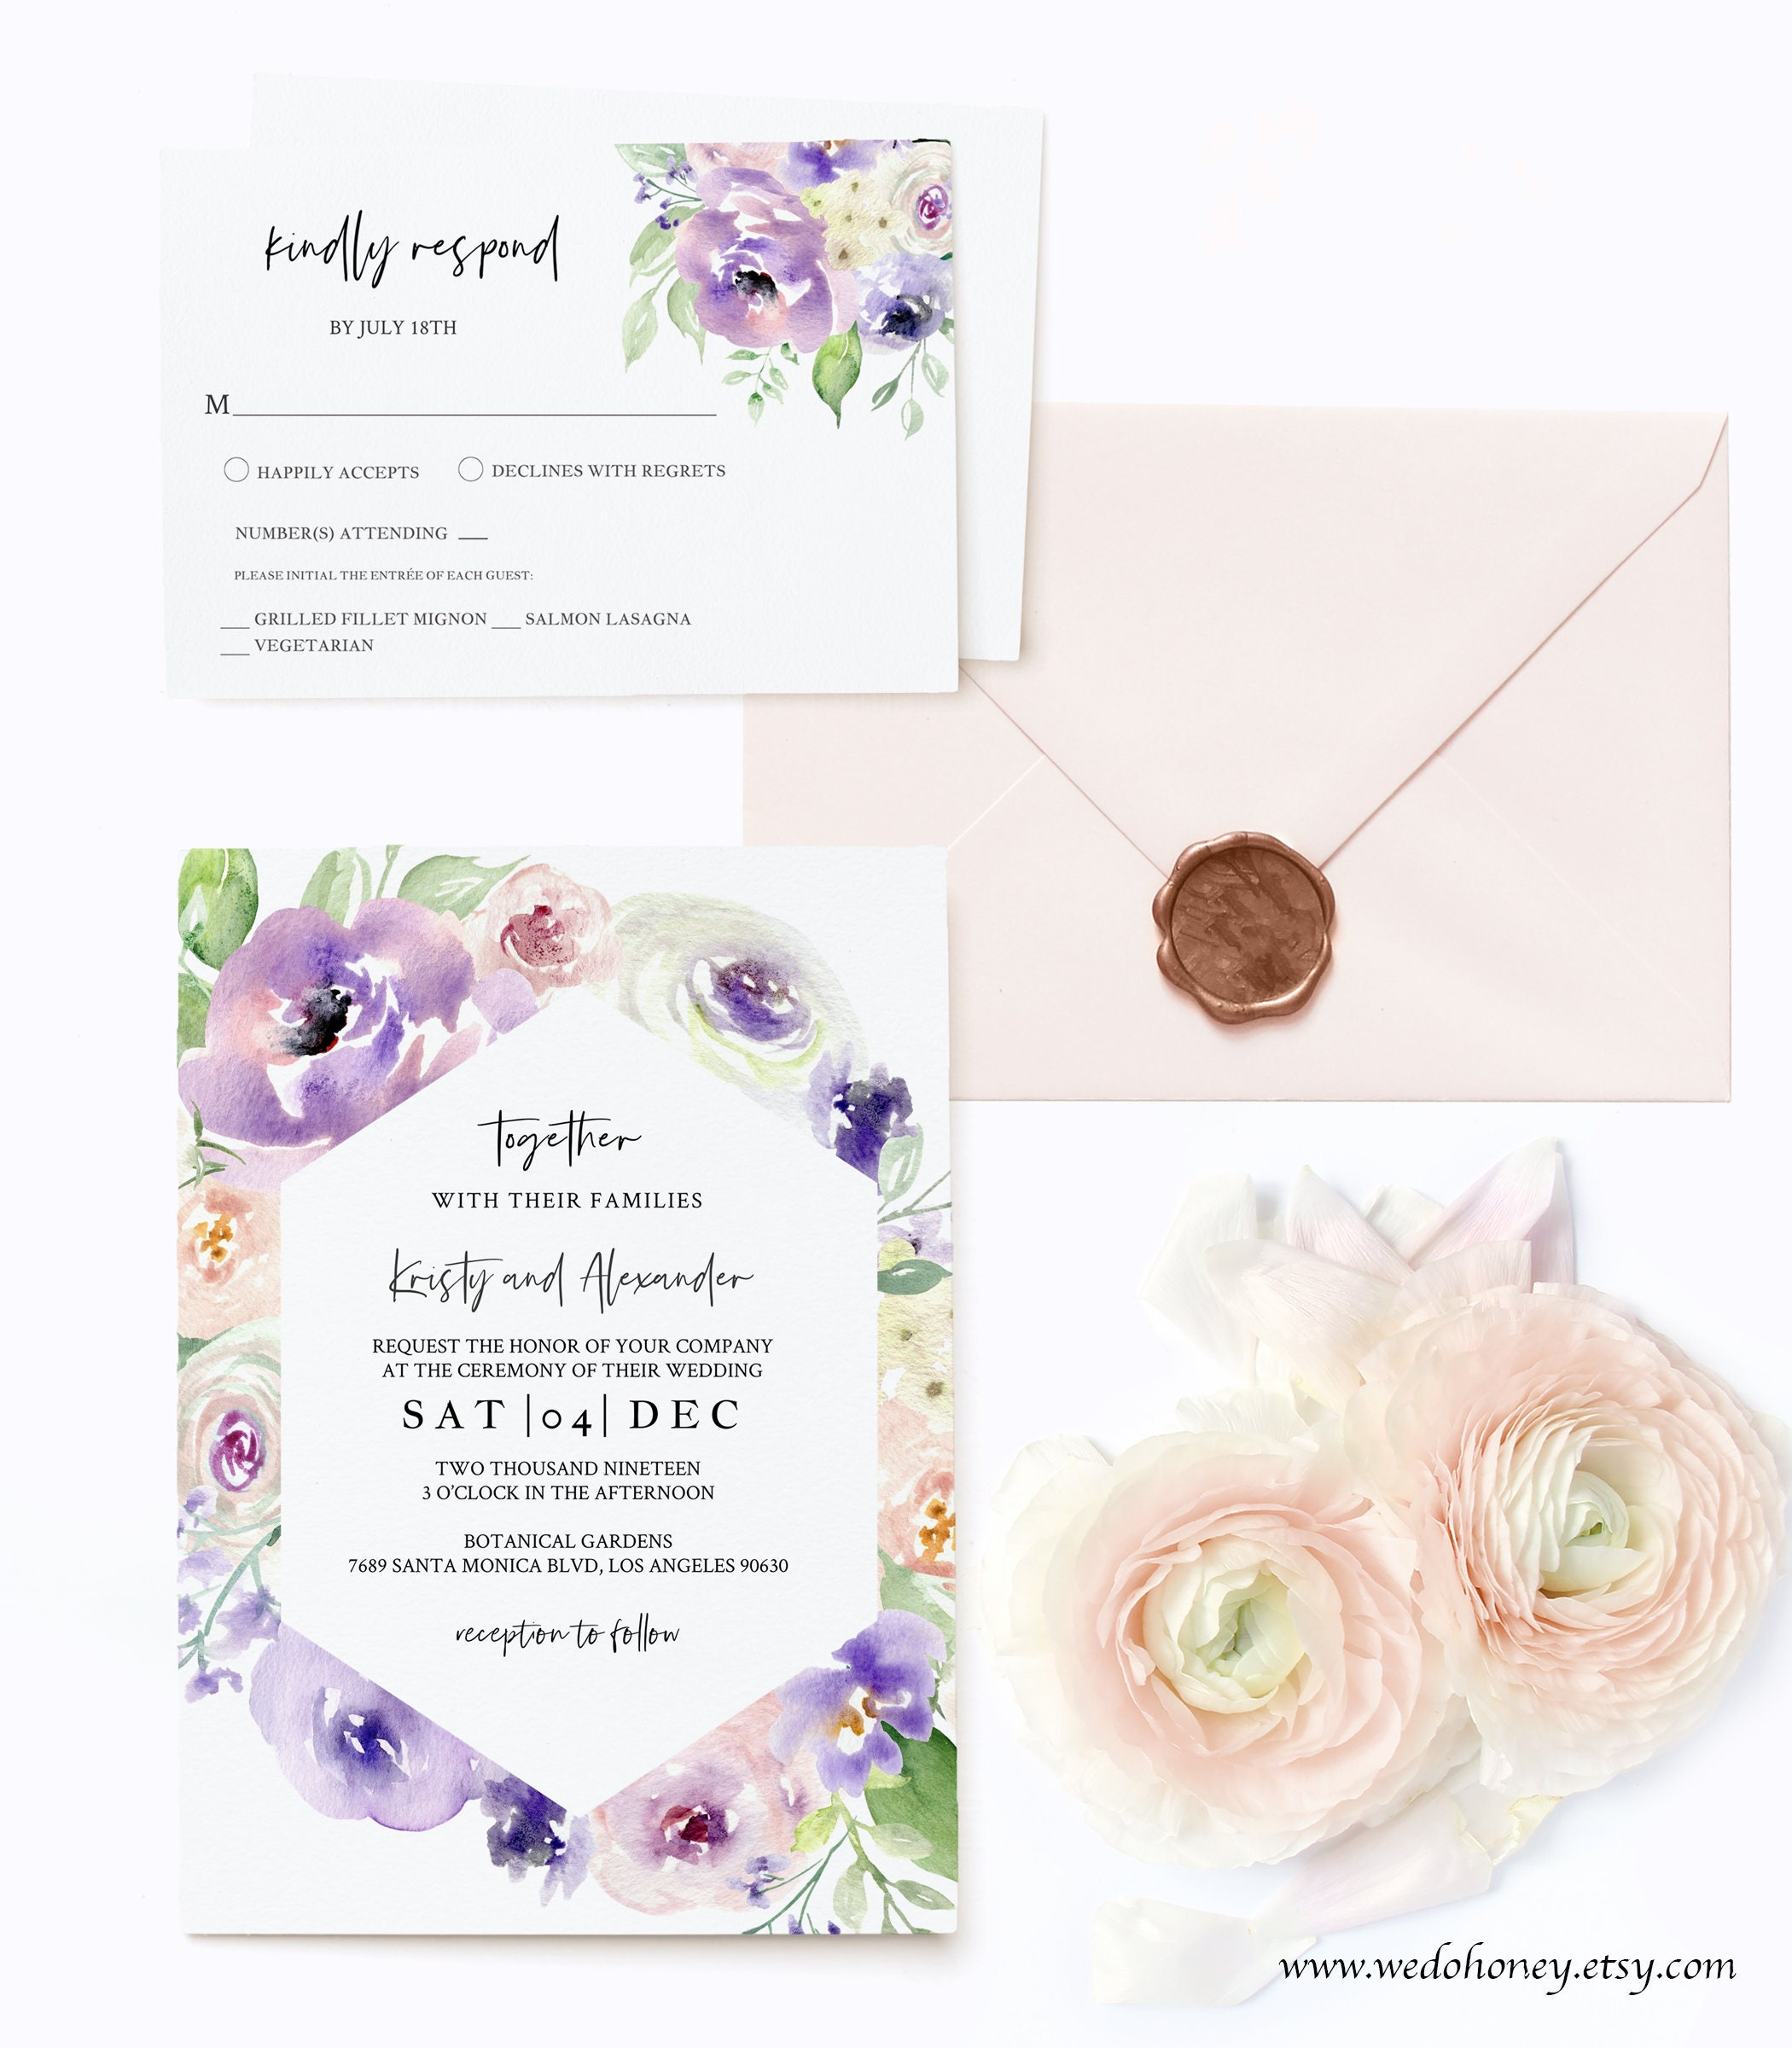 Blush Floral Wedding Suite Invitation, Lavender Invitations, Watercolor Flowers, Instant Download, Editable Text with Corjl #085